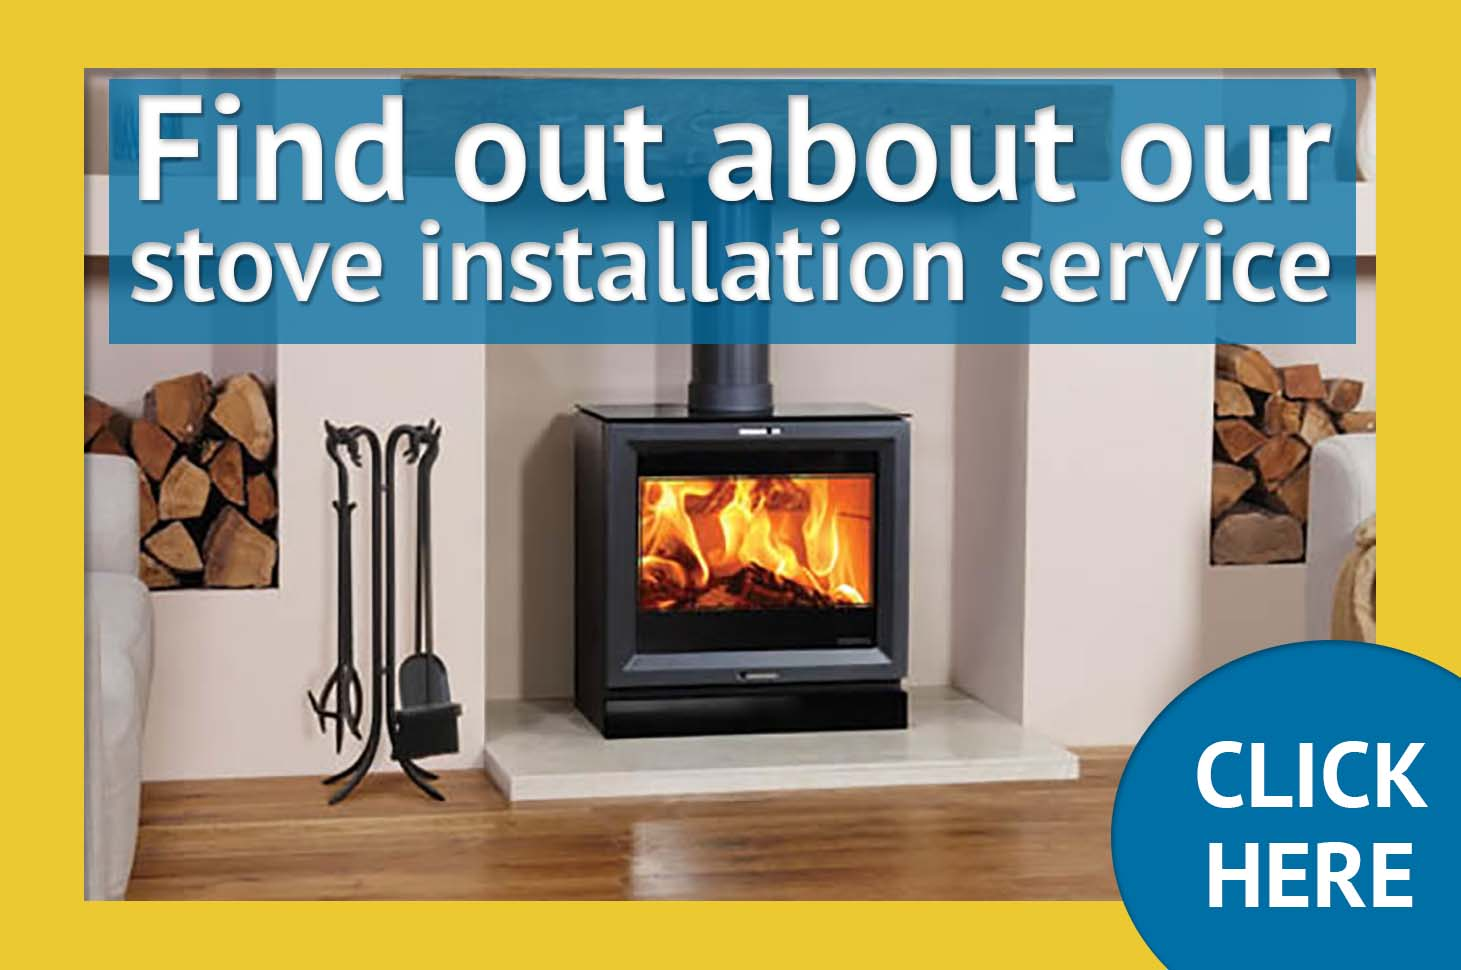 Wood burning stove installation Shropshire, West Midlands UK